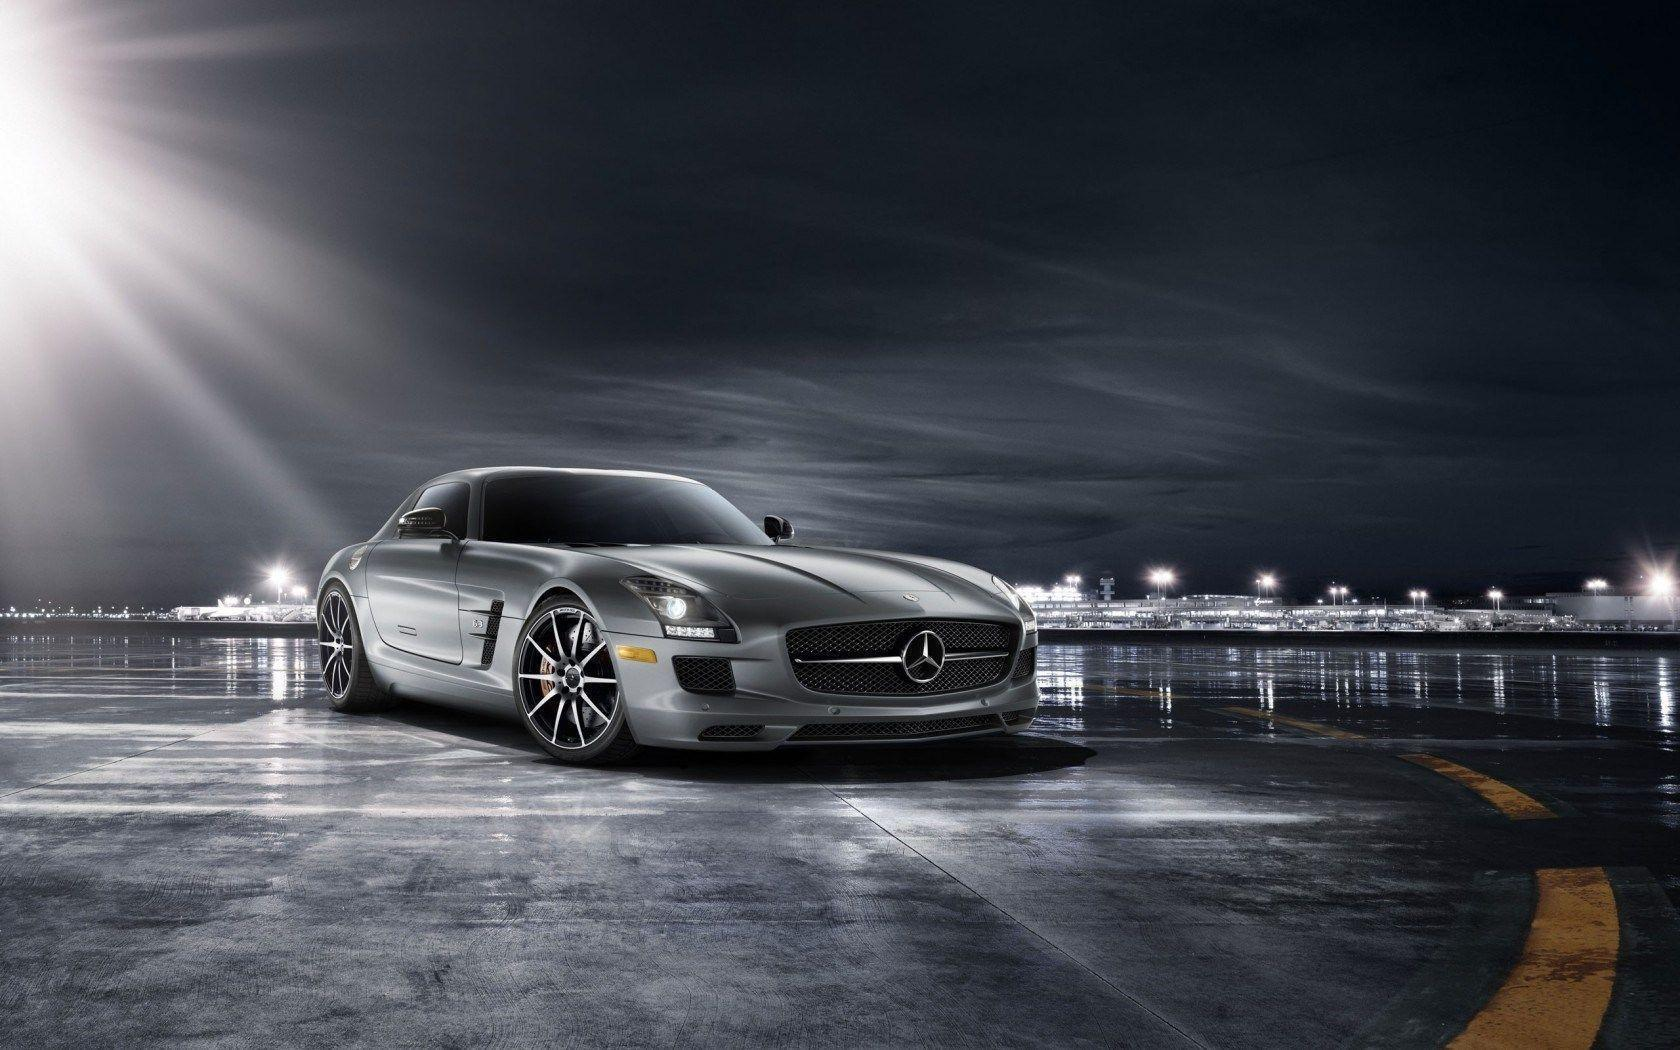 mercedes cl63 amg hd - photo #34